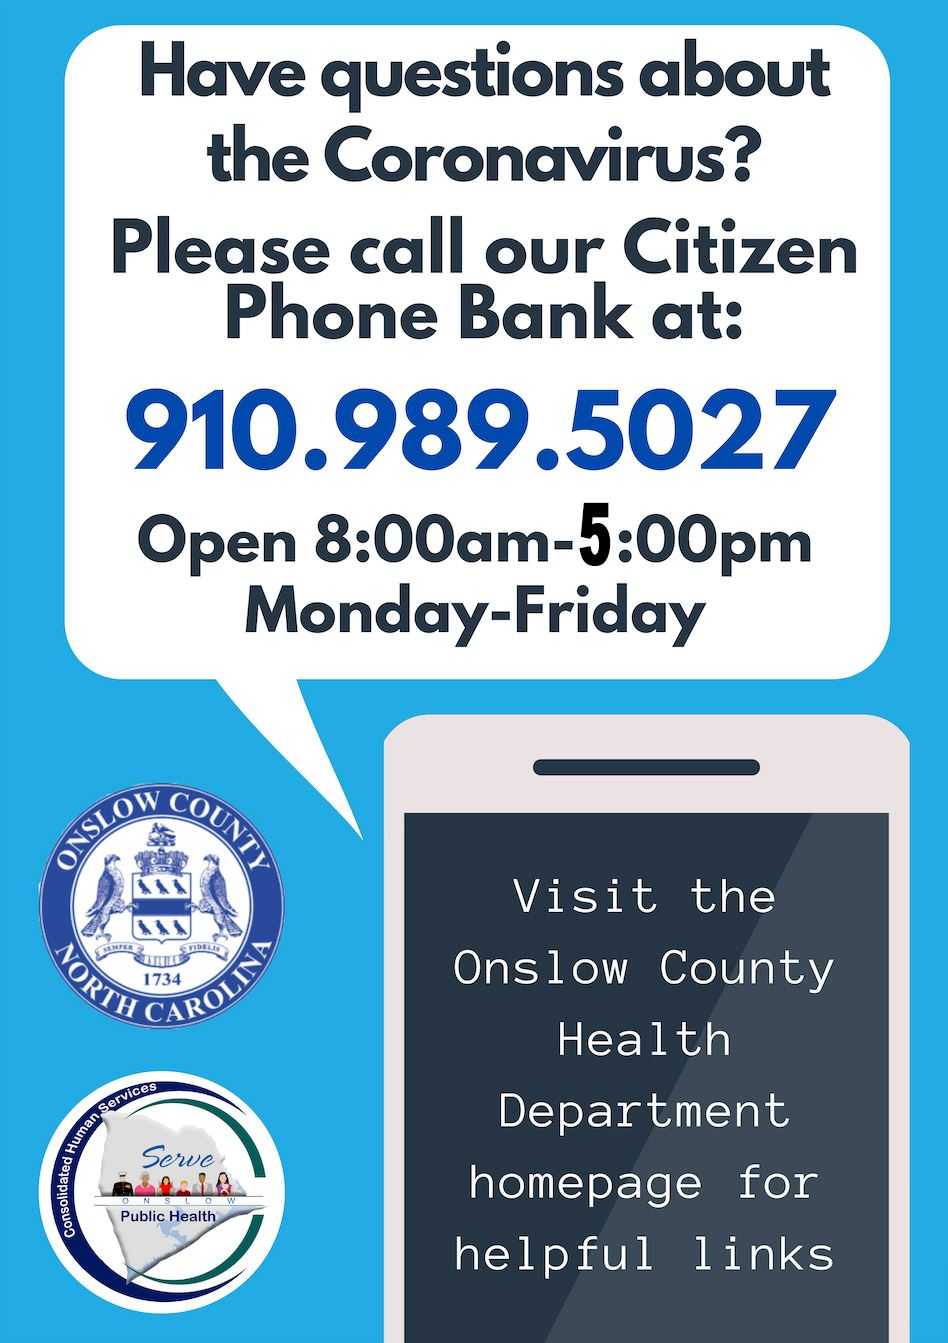 Phone bank hours